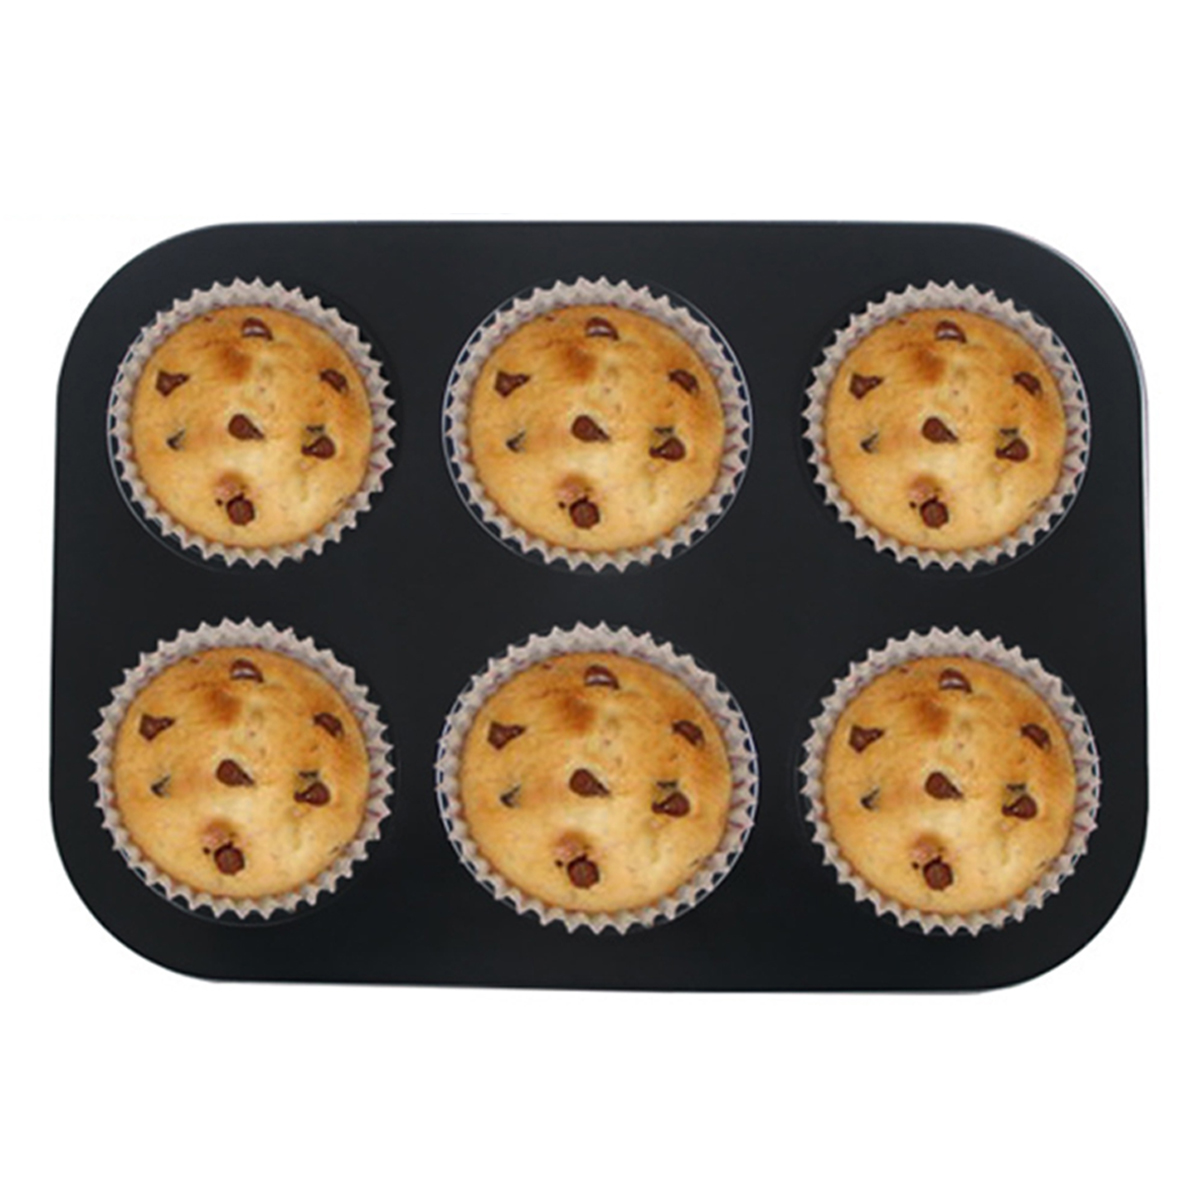 6pc Muffin Pan Baking Cooking Tray Mould Round Bake Cup Cake Gold/Black